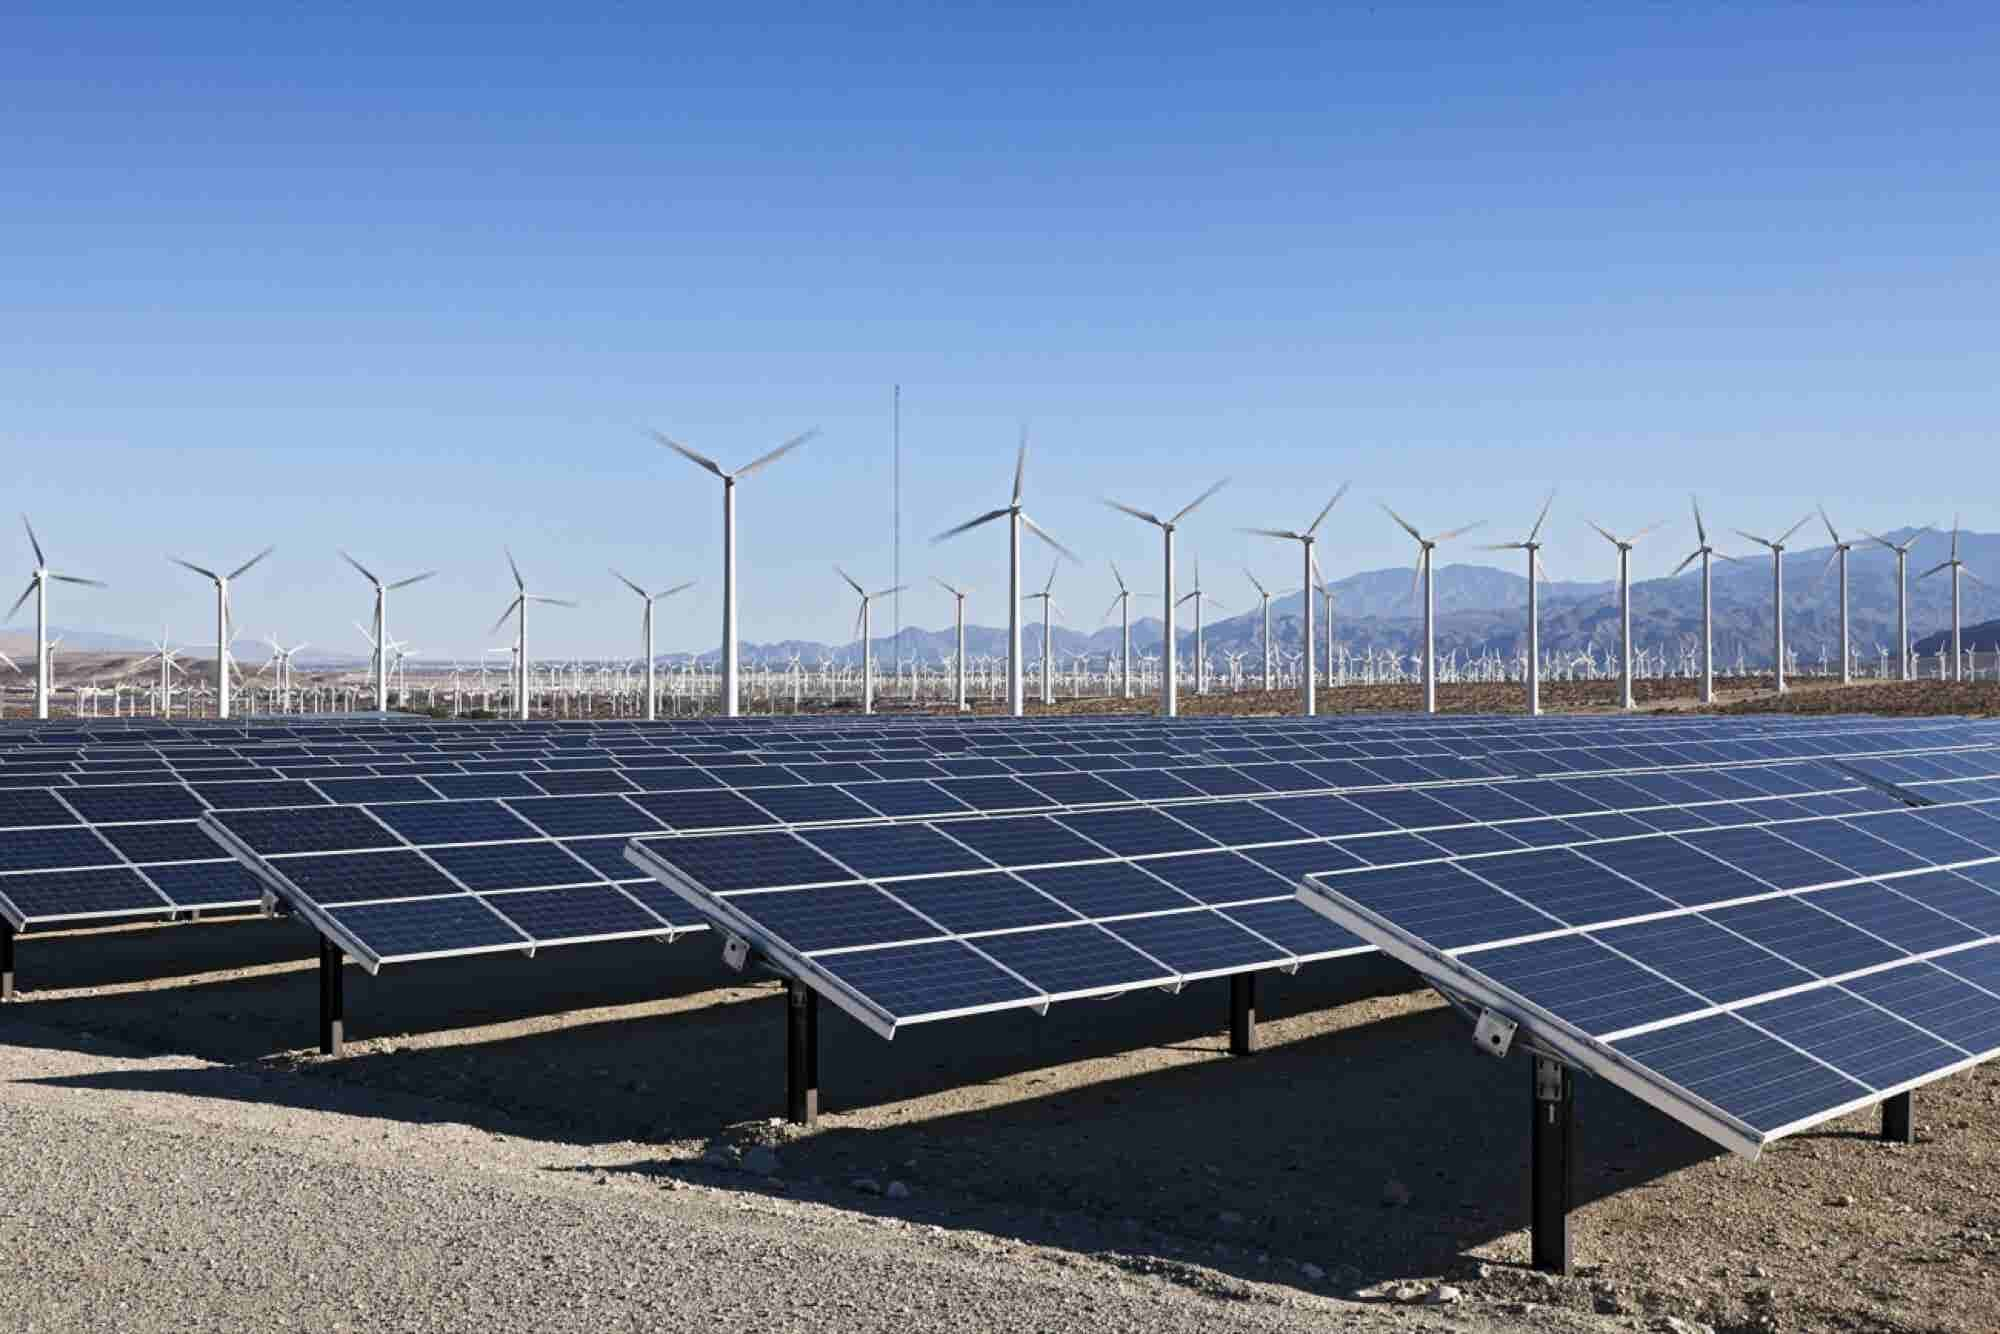 The Next Wave of New Jobs in India Will Be in Renewable Energy Sector. Here's Why